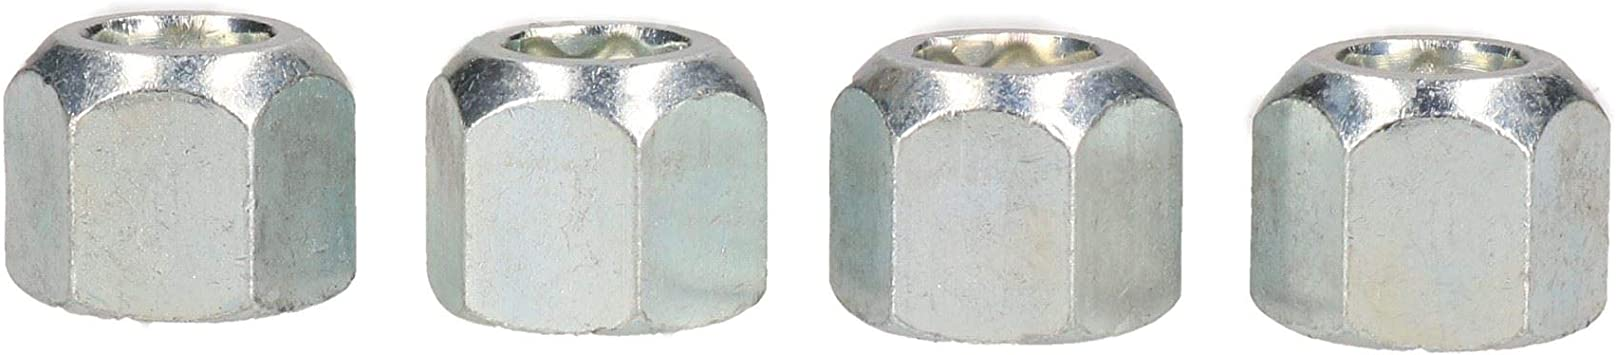 Replacement Wheel Nuts for Indespension Boat Jetski Marine Coaster Trailers 4pk